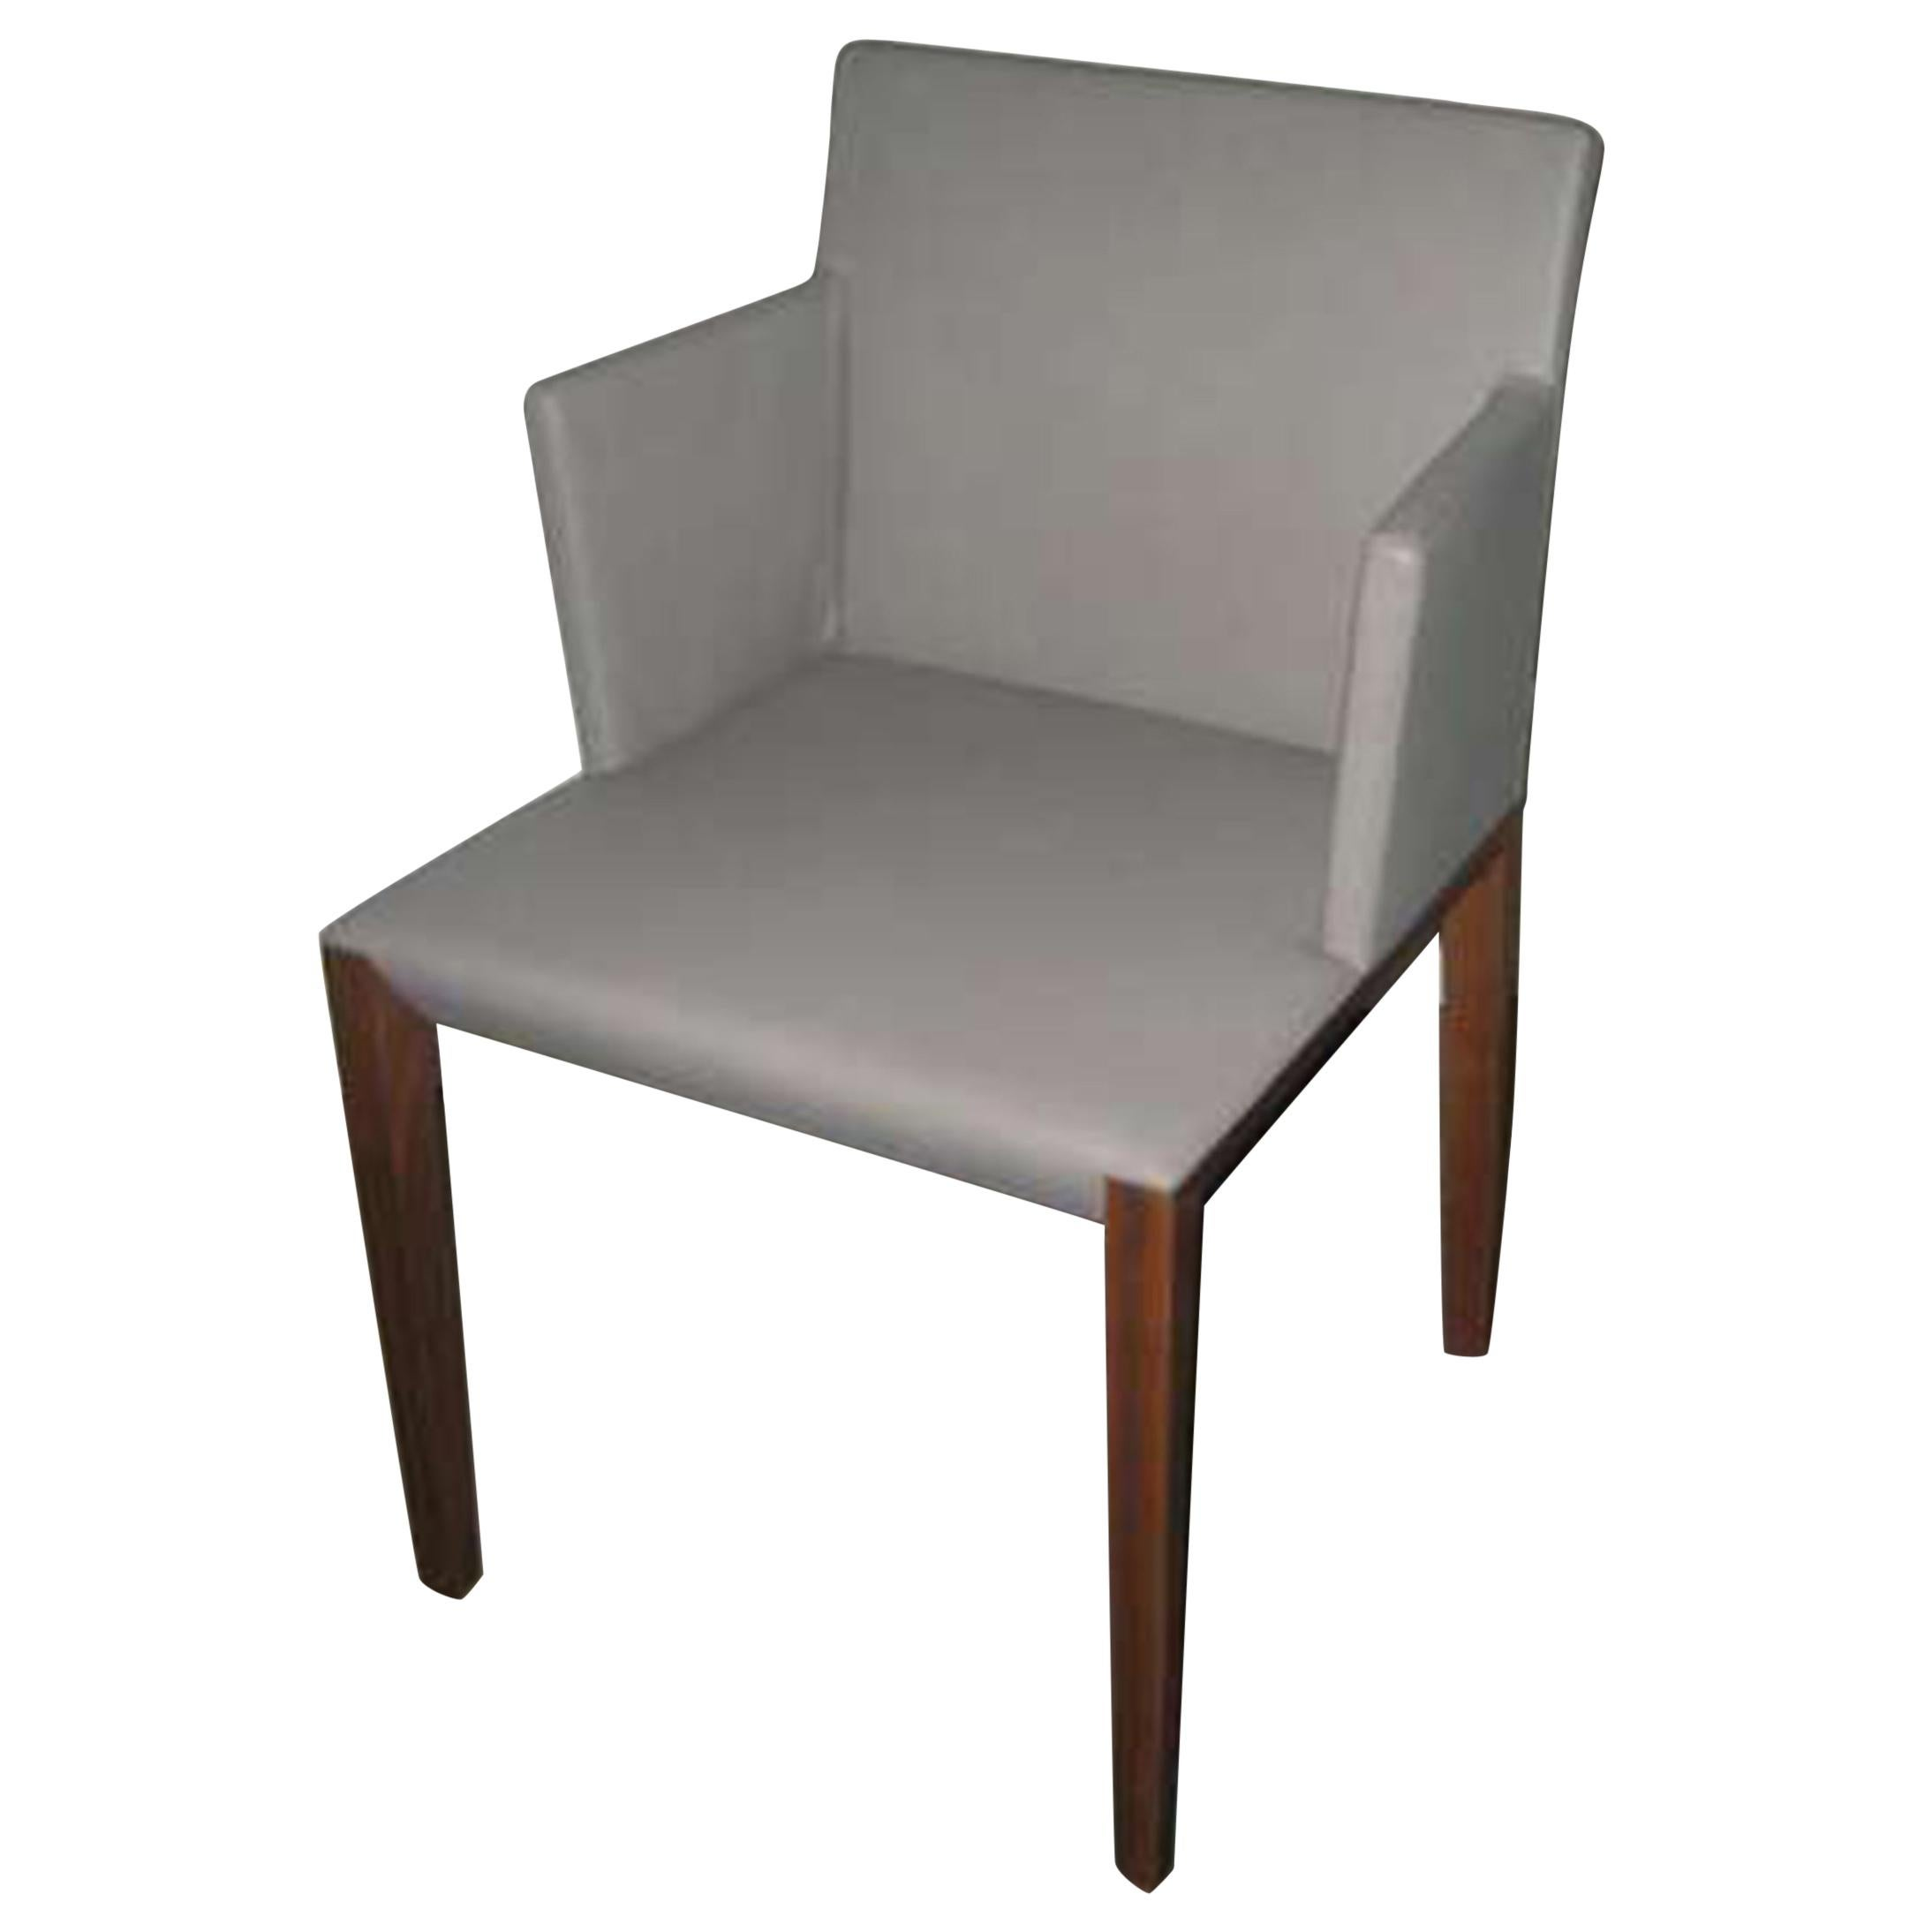 Lloyd Loom Sessel Walter Knoll Seating 76 For Sale At 1stdibs